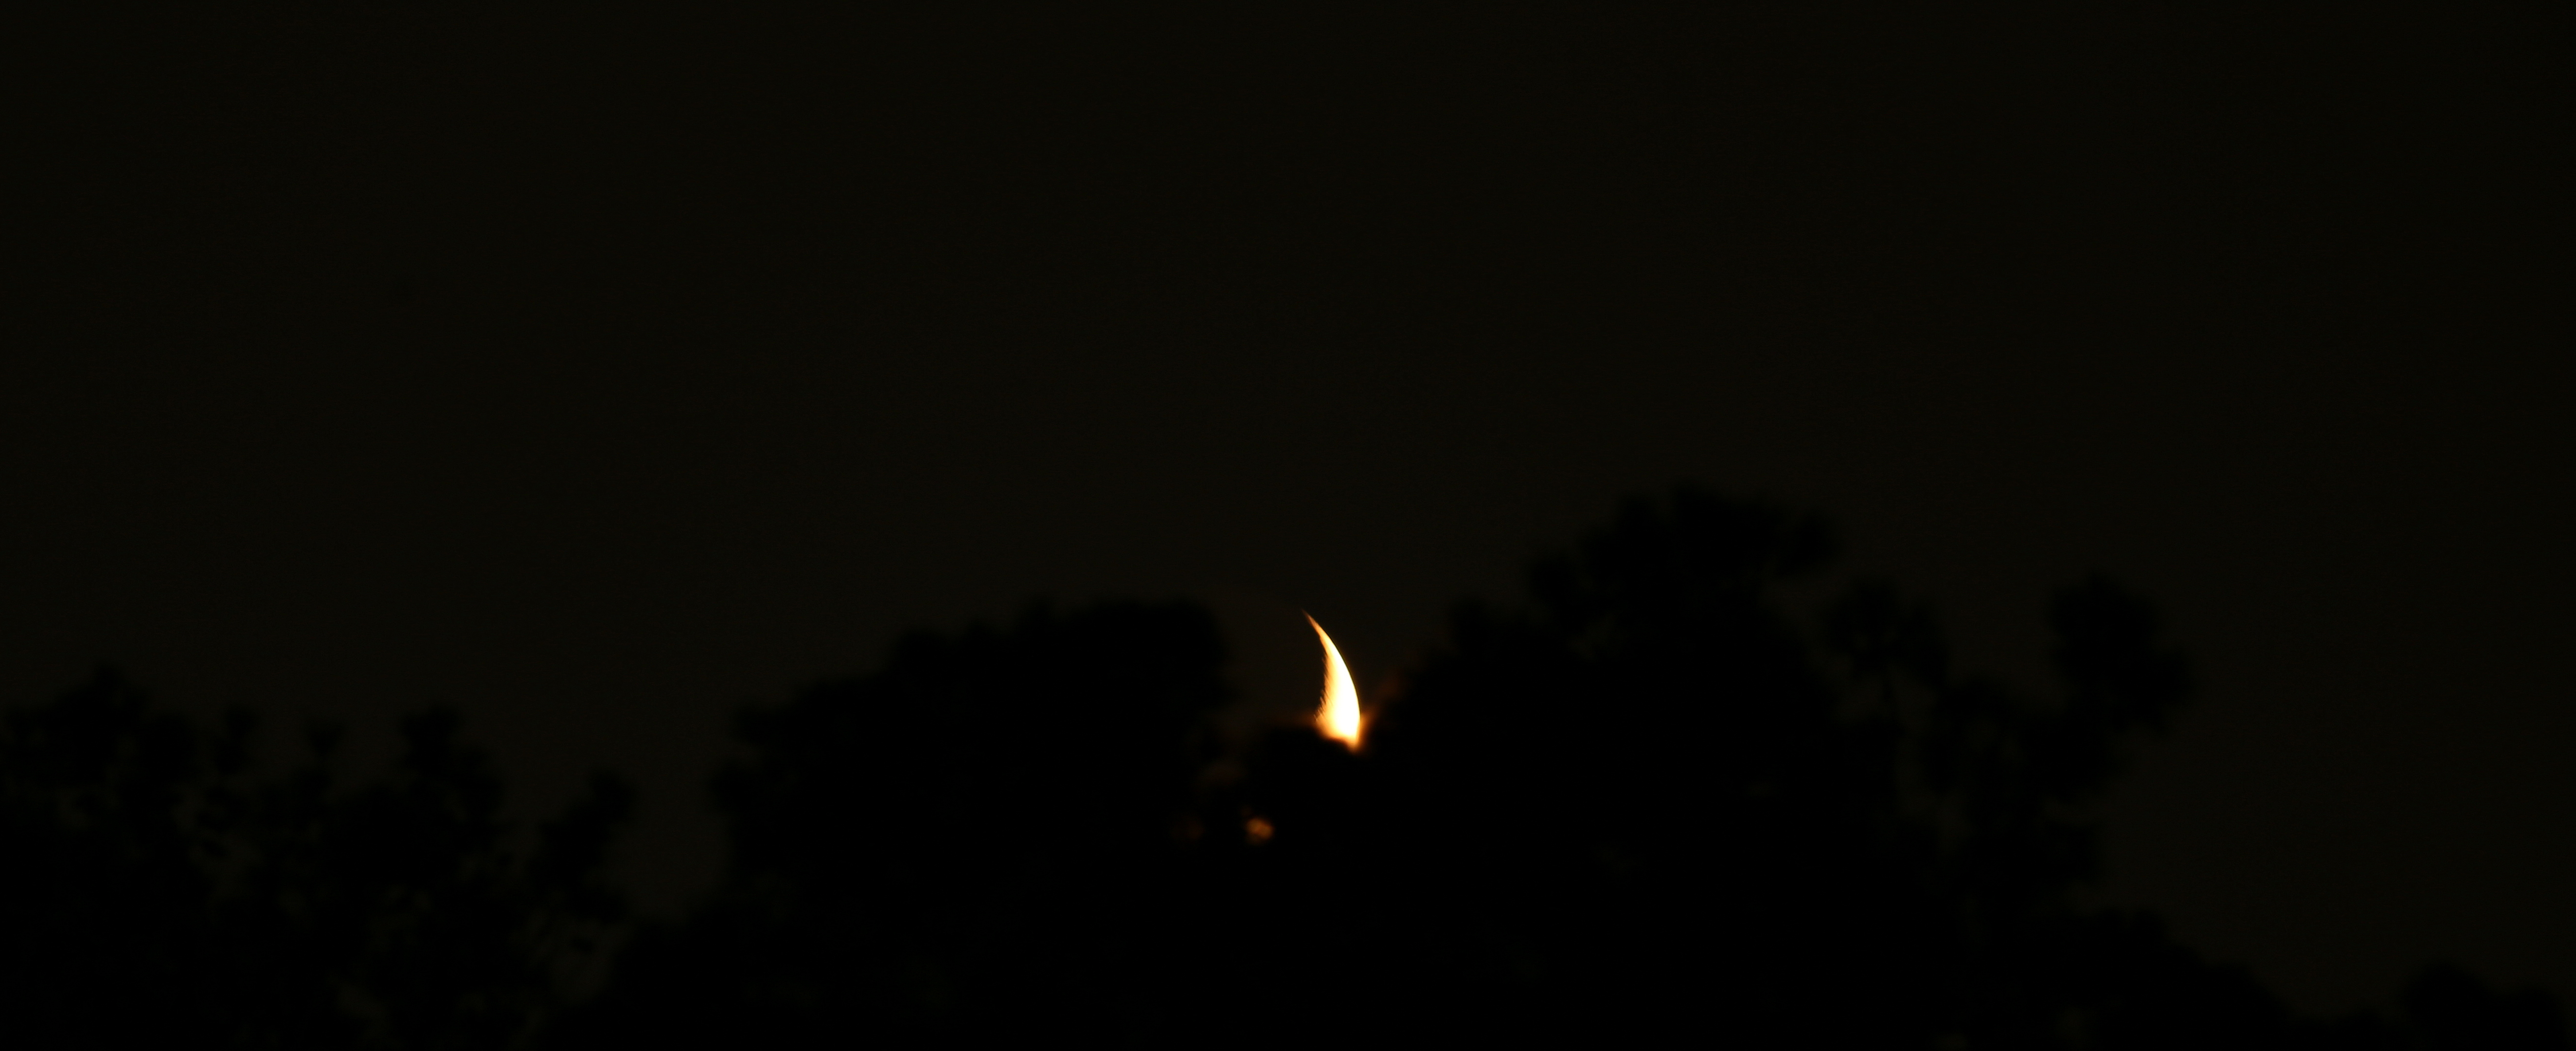 Photography ~ Practicing Moon Shots [Waxing Crescent] as It Sets, using my Canon EF 400mm f/5.6L USM Lens, 07/26